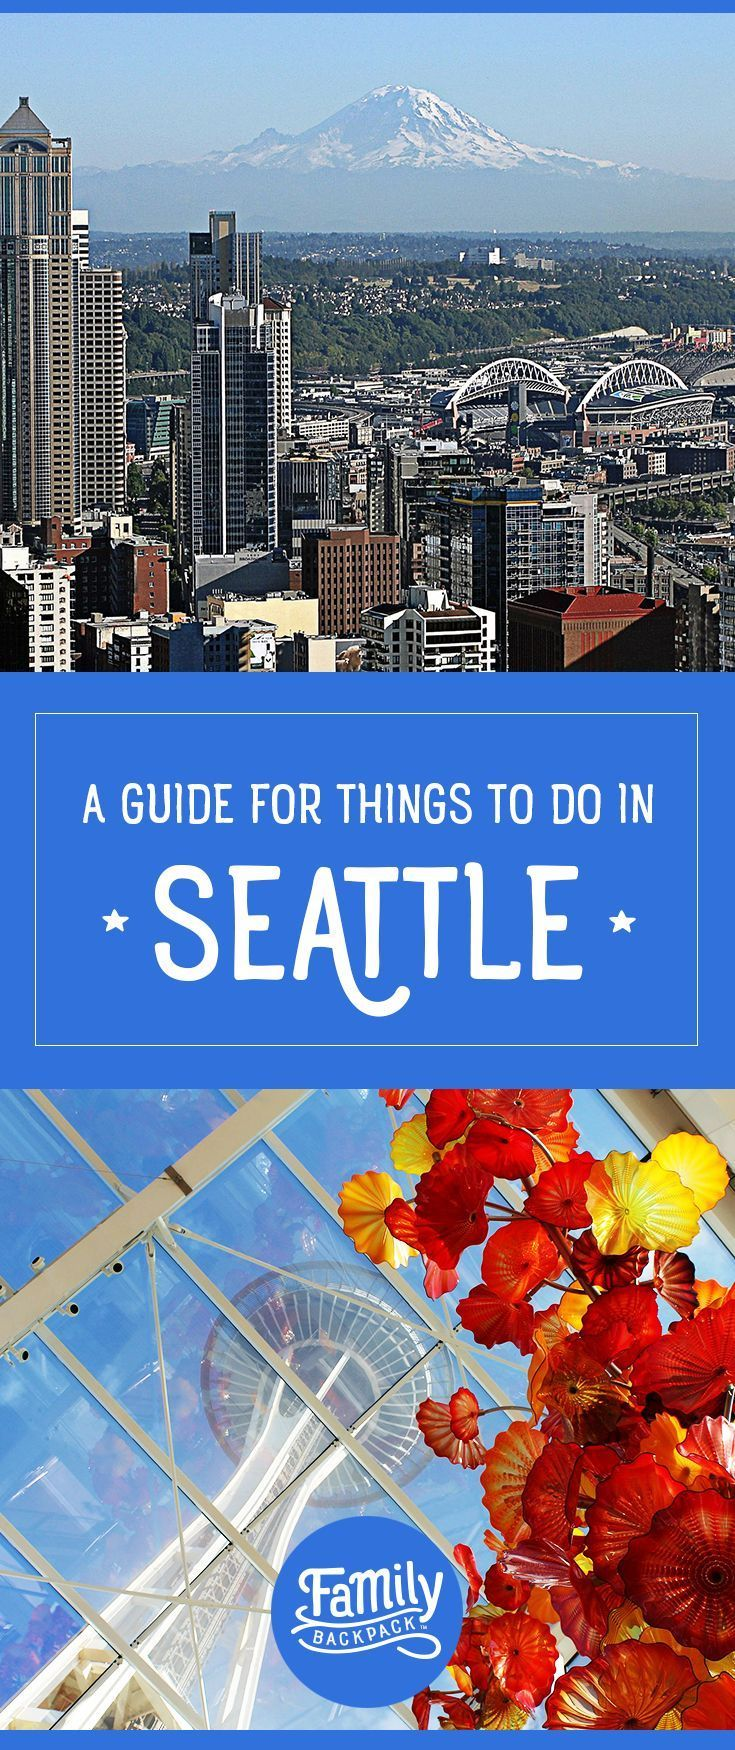 A Guide for Things to do in Seattle-  #Seattle, Washington is a city with everything to offer! If you are looking for #fun #thingstodo, where to stay, what #outfit to wear, or even the best place for a #photography shoot- We have you covered! Check out The Family Backpack's collection of tips and suggestions for visiting Seattle. Make Seattle your next travel #adventure!